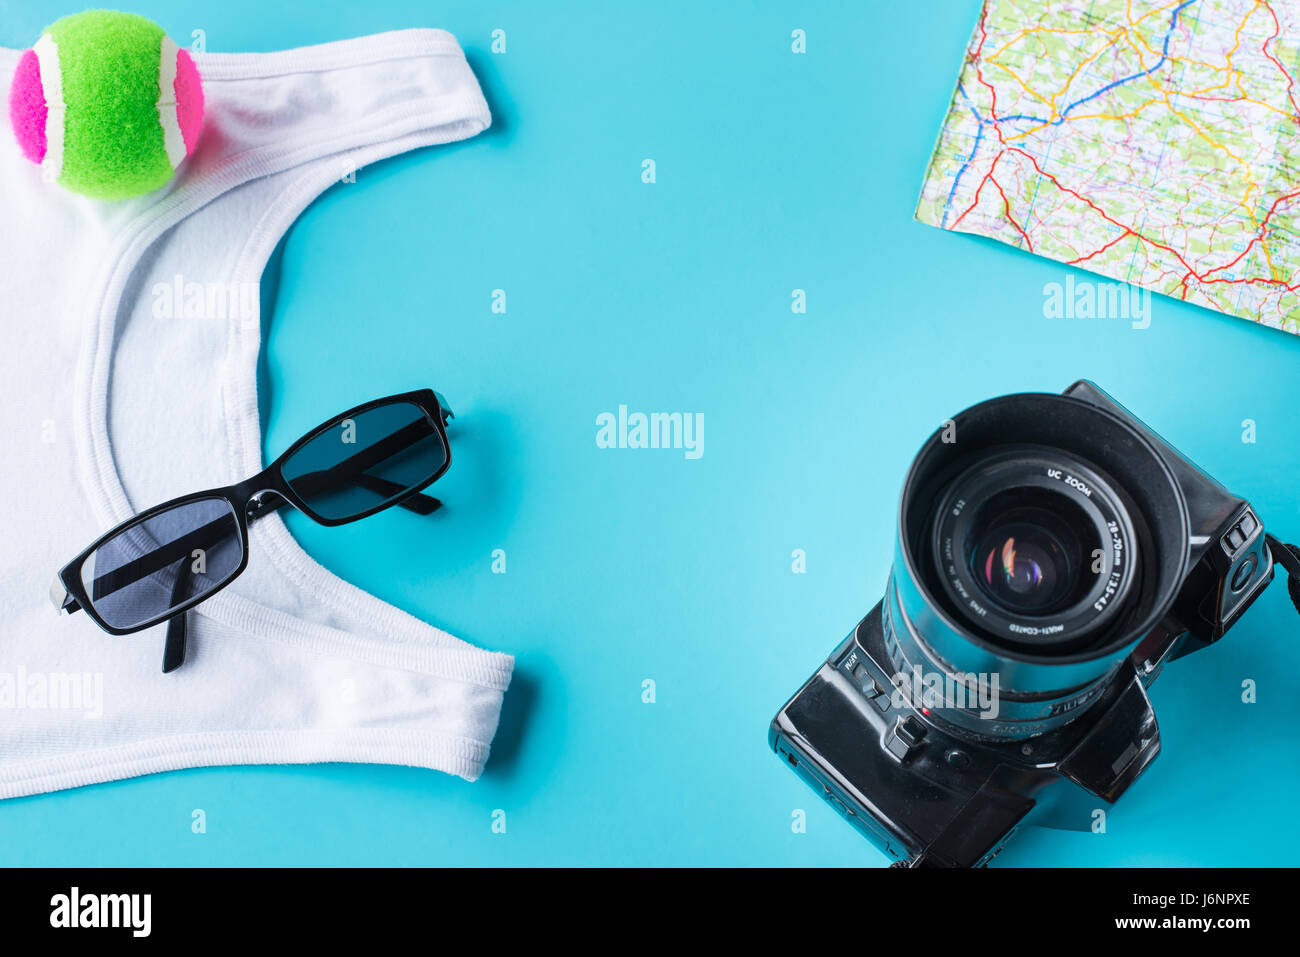 Travel kit: camera, map, t-shirt sun glasses and the small ball. Flat lay composition for social media and travelers. - Stock Image